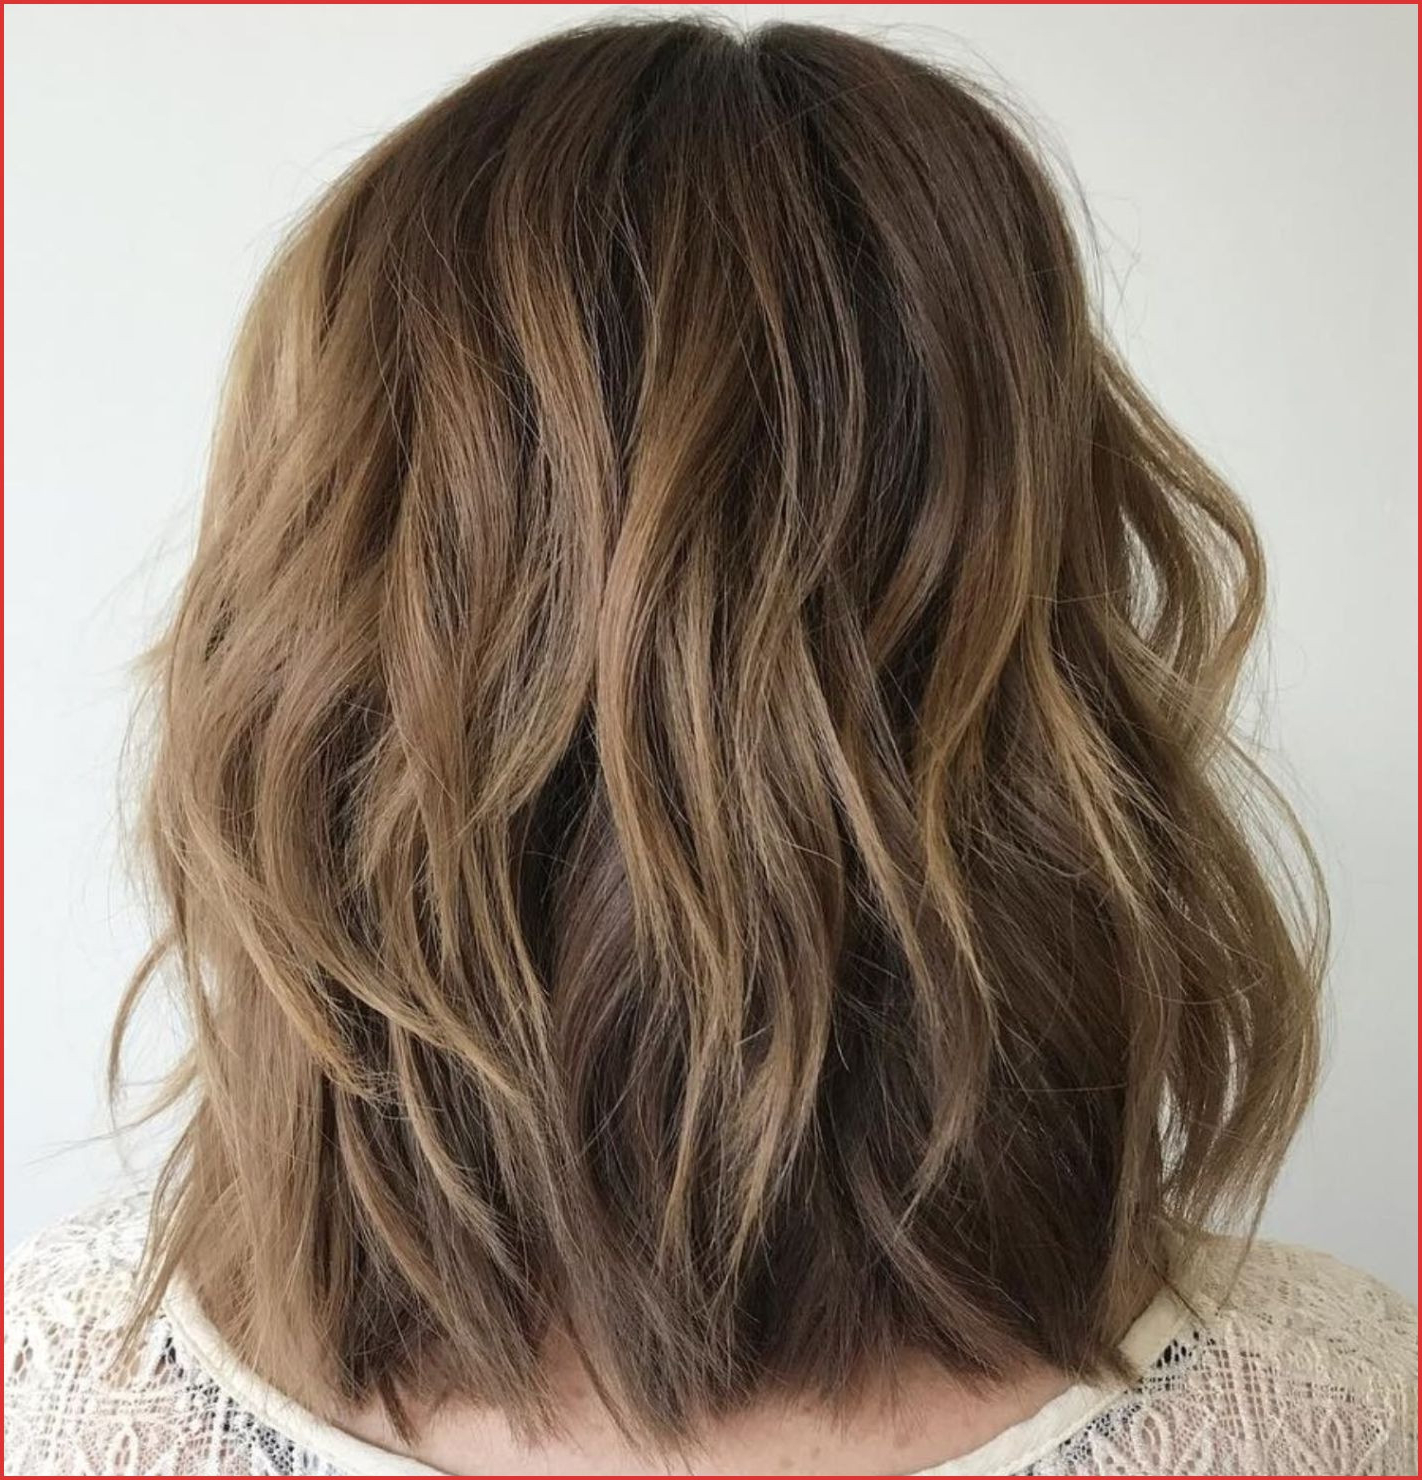 Current Short, Medium, And Long Layers For Long Hairstyles For Hairstyles : Short Layers On Long Hair Latest Thick Medium Length (View 9 of 20)